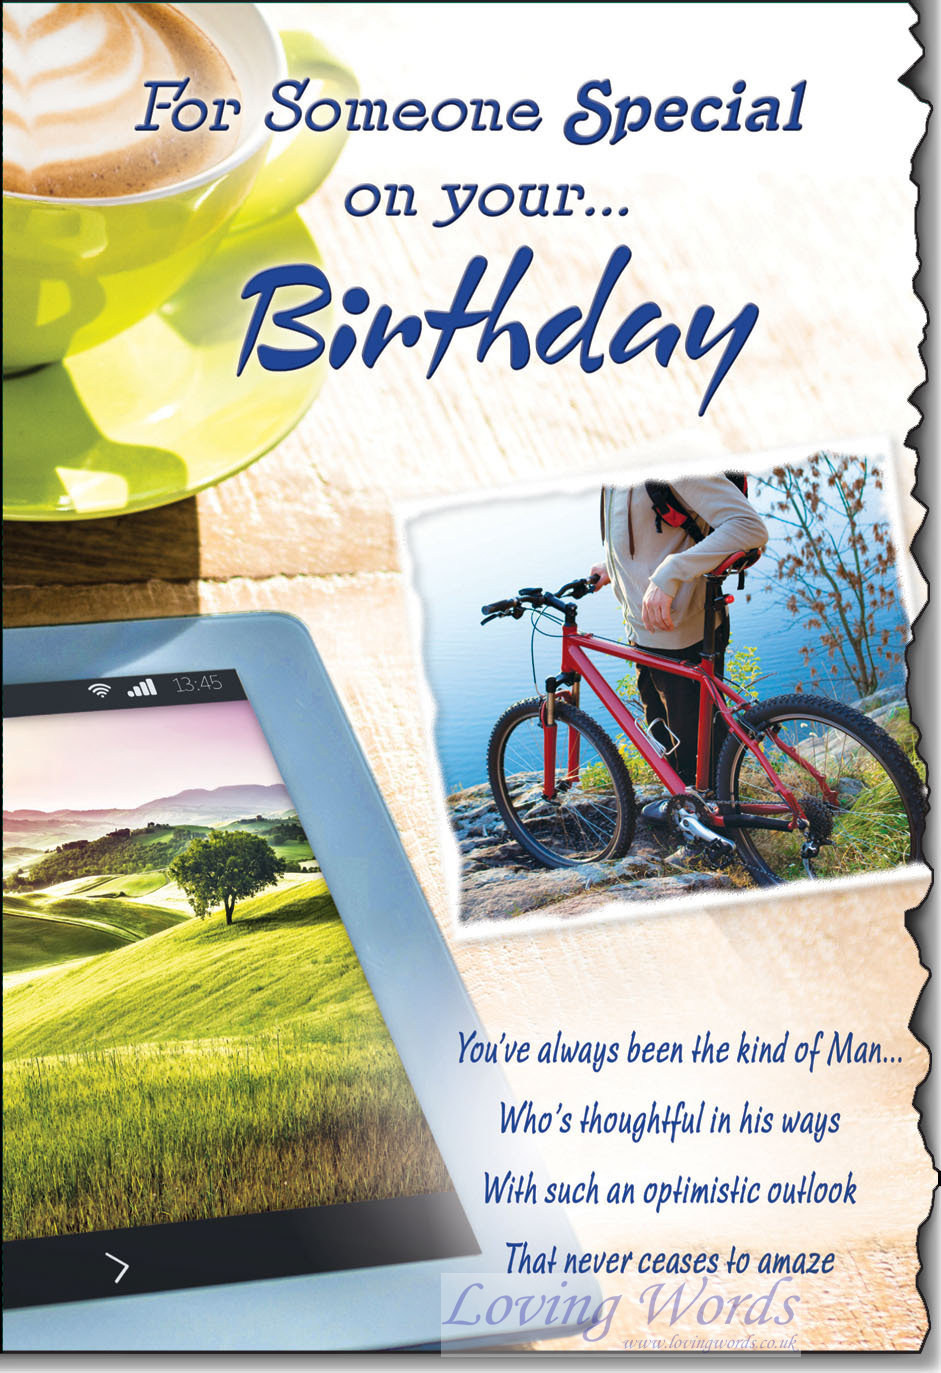 Groovy Someone Special Birthday Greeting Cards By Loving Words Funny Birthday Cards Online Barepcheapnameinfo